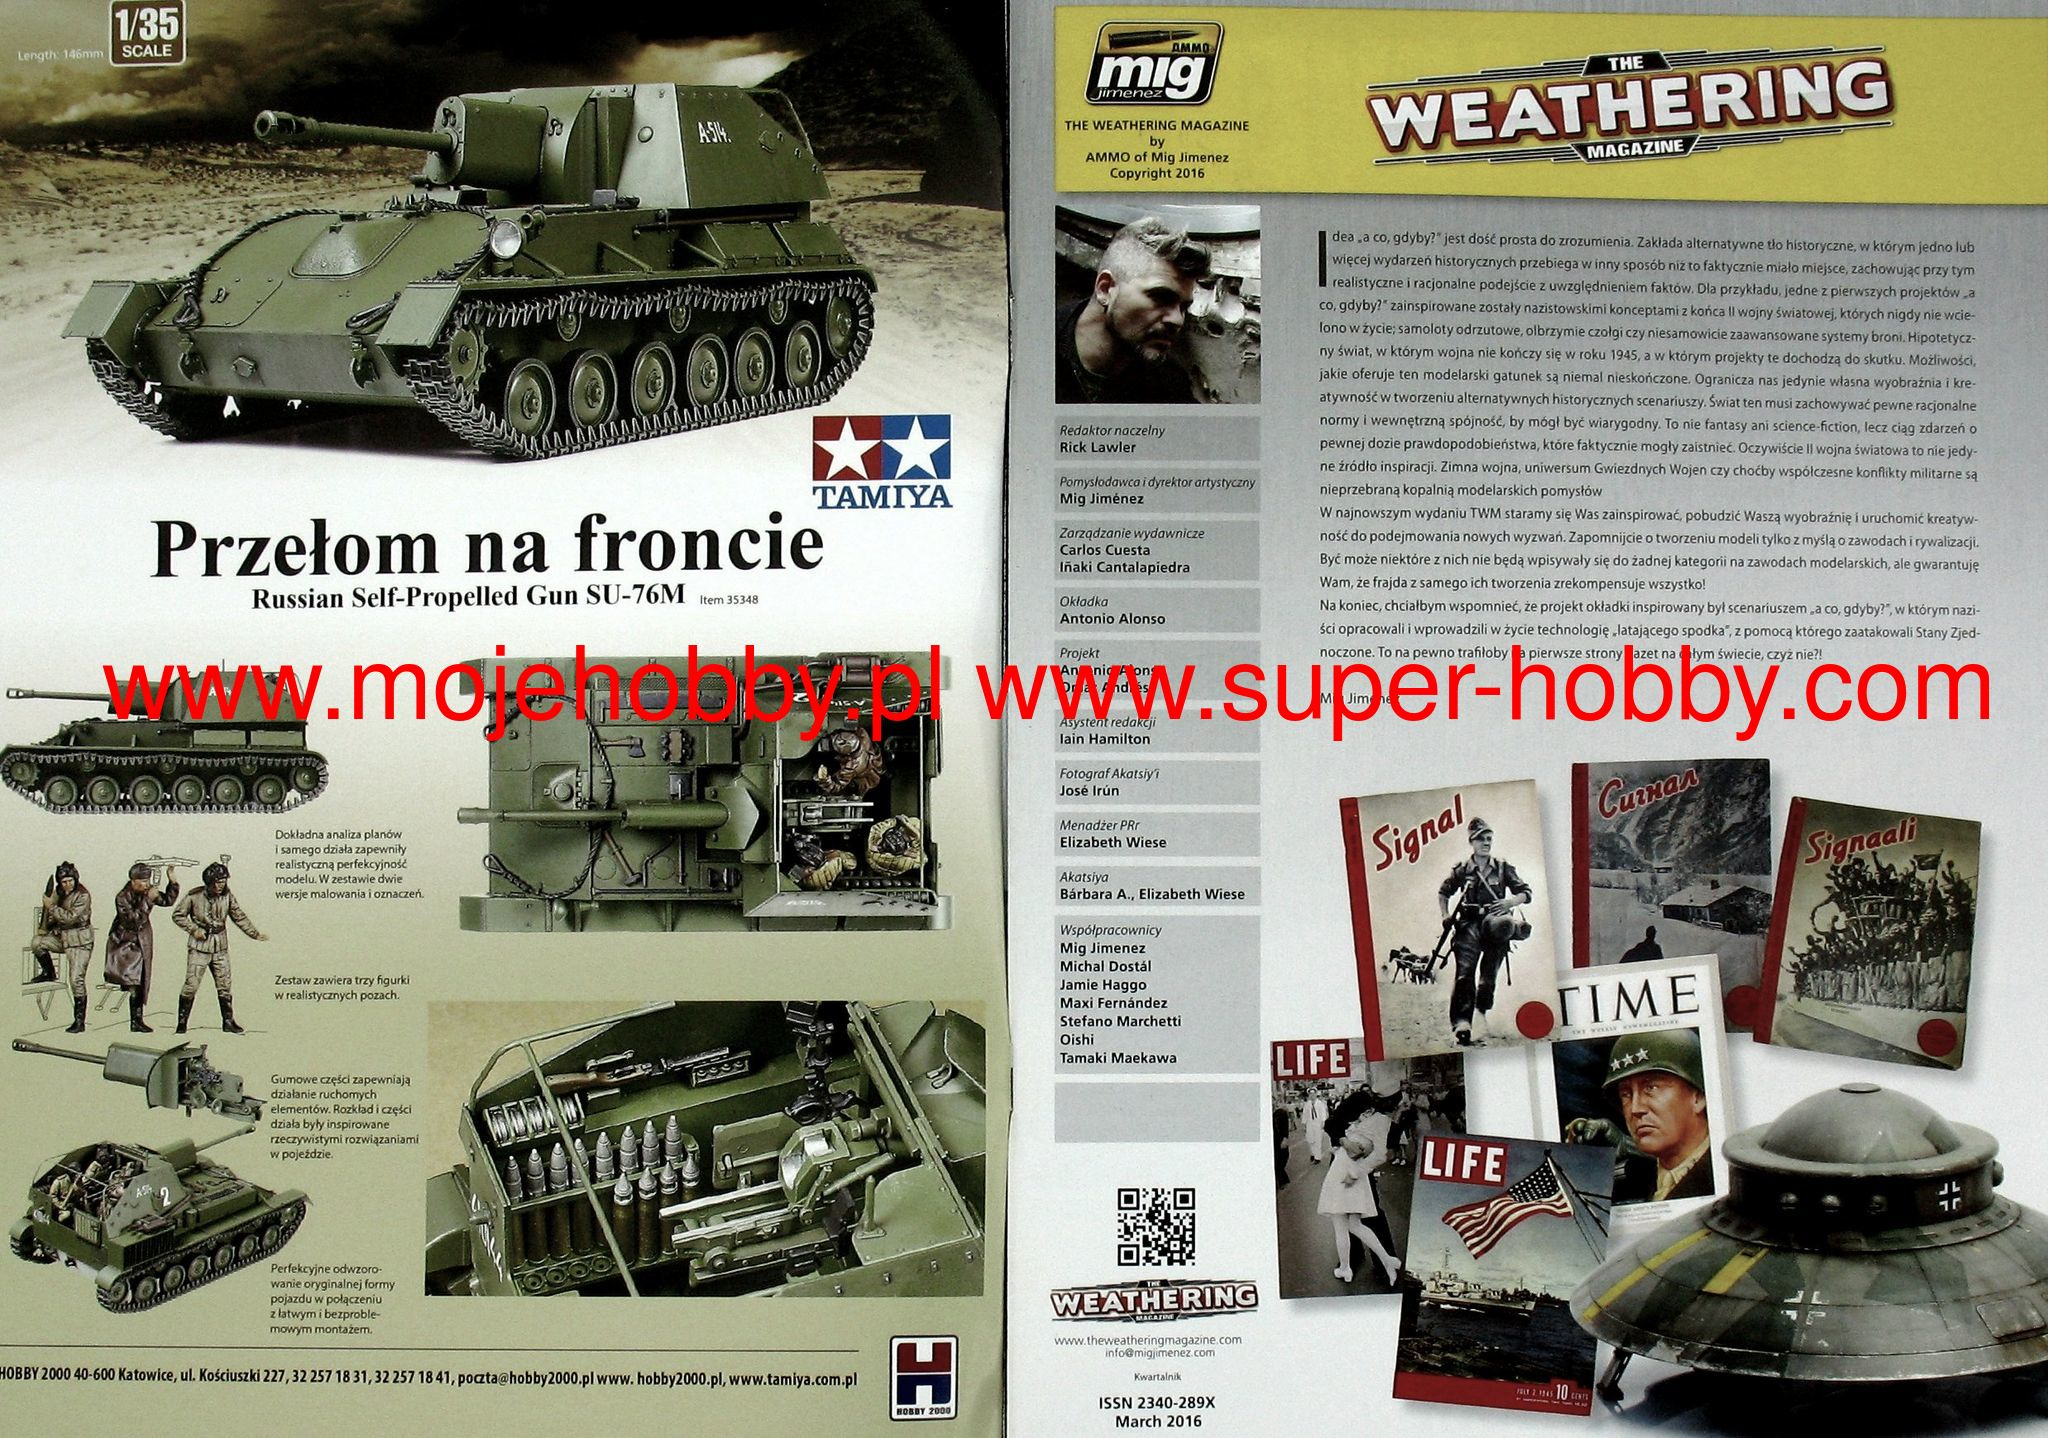 Weathering Magazine 15 What If INGLESE Ammo Mig Ammo of Mig 8432074045144